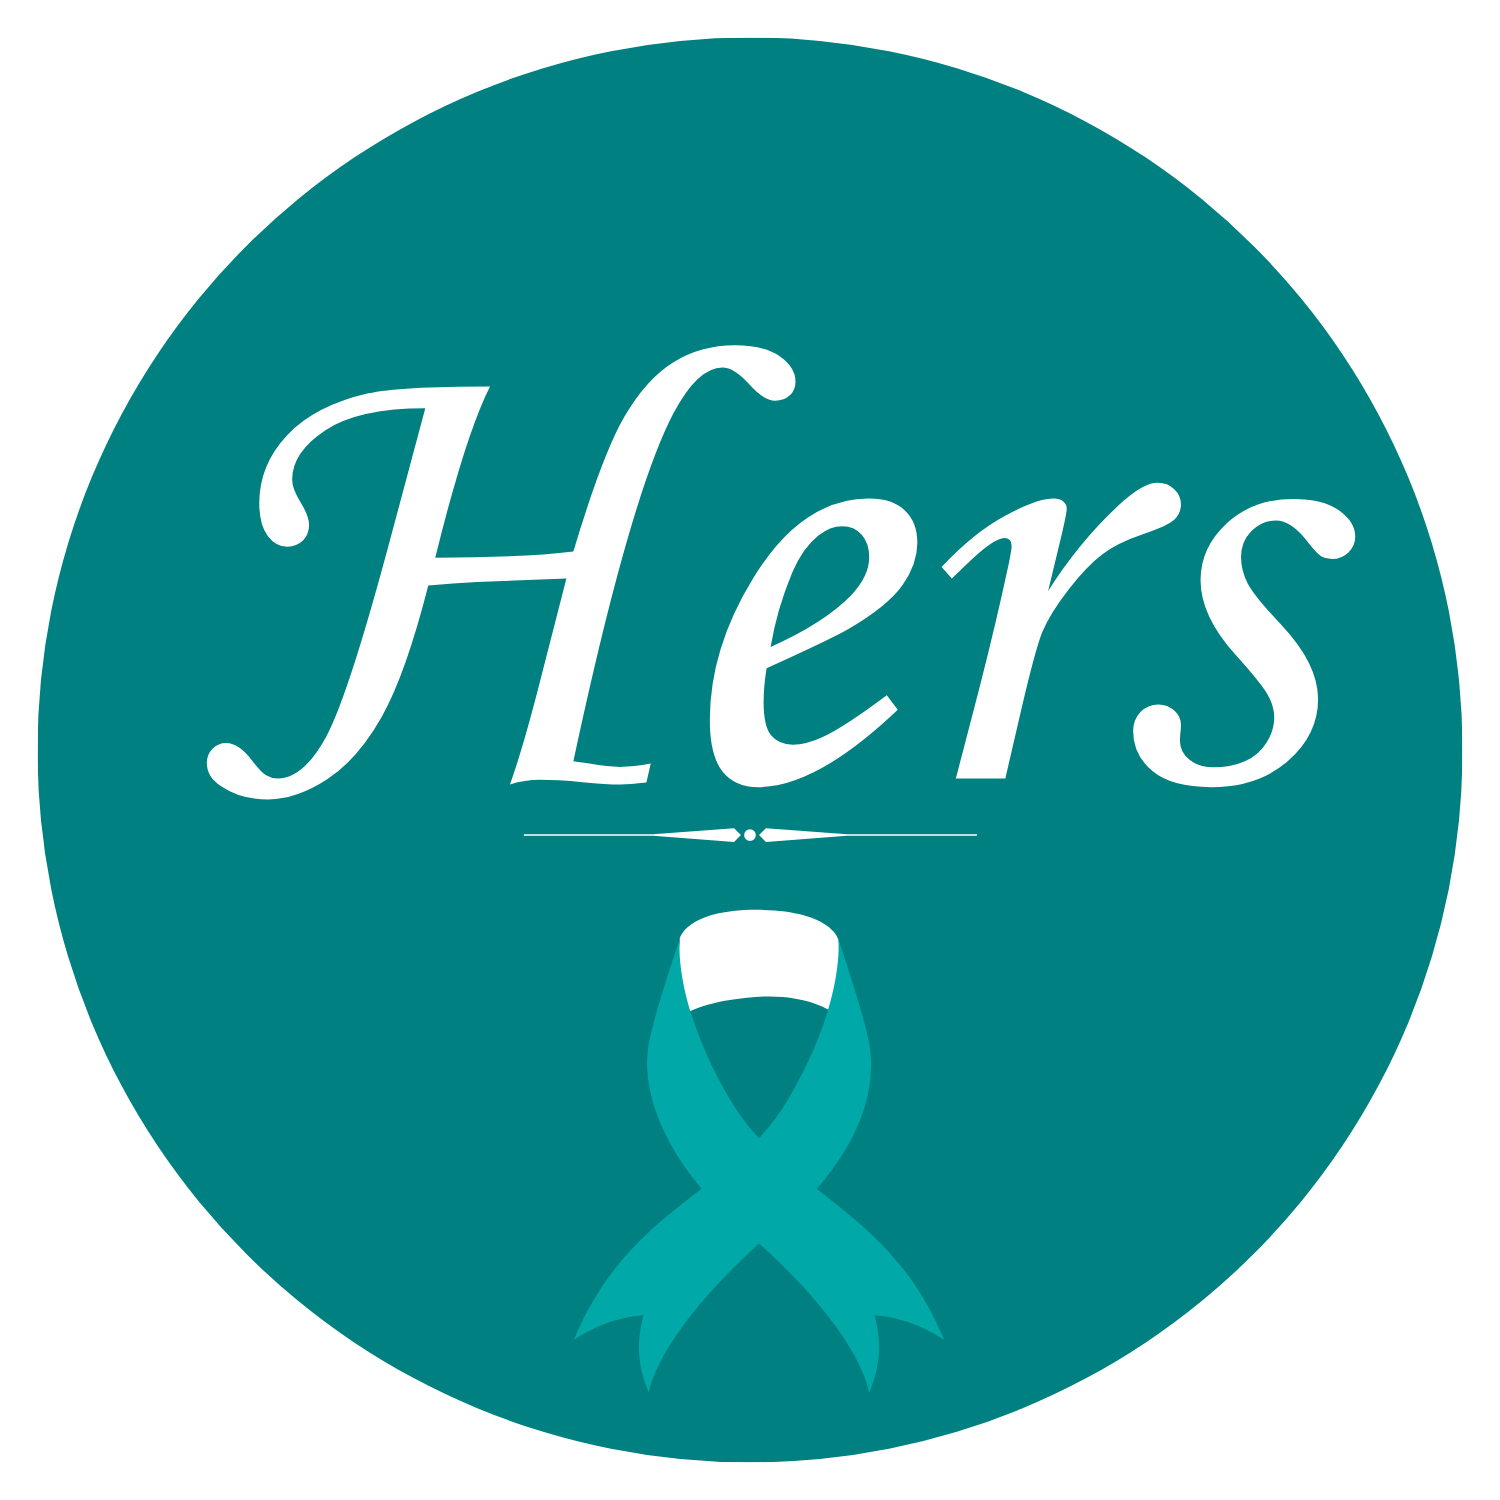 HERS | Health Education Resources